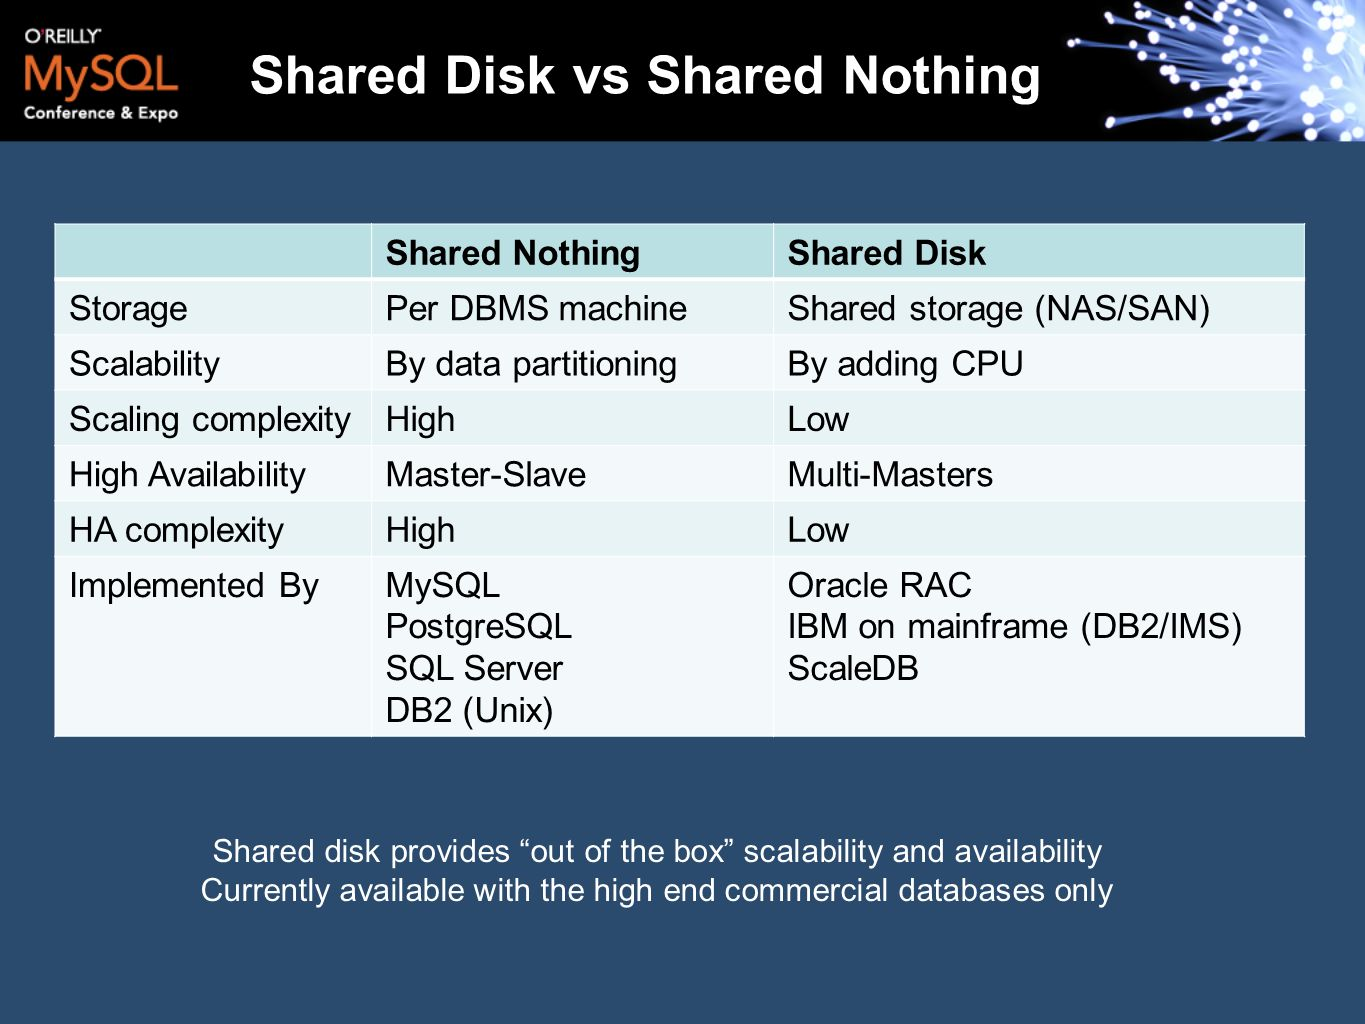 Shared Disk vs Shared Nothing